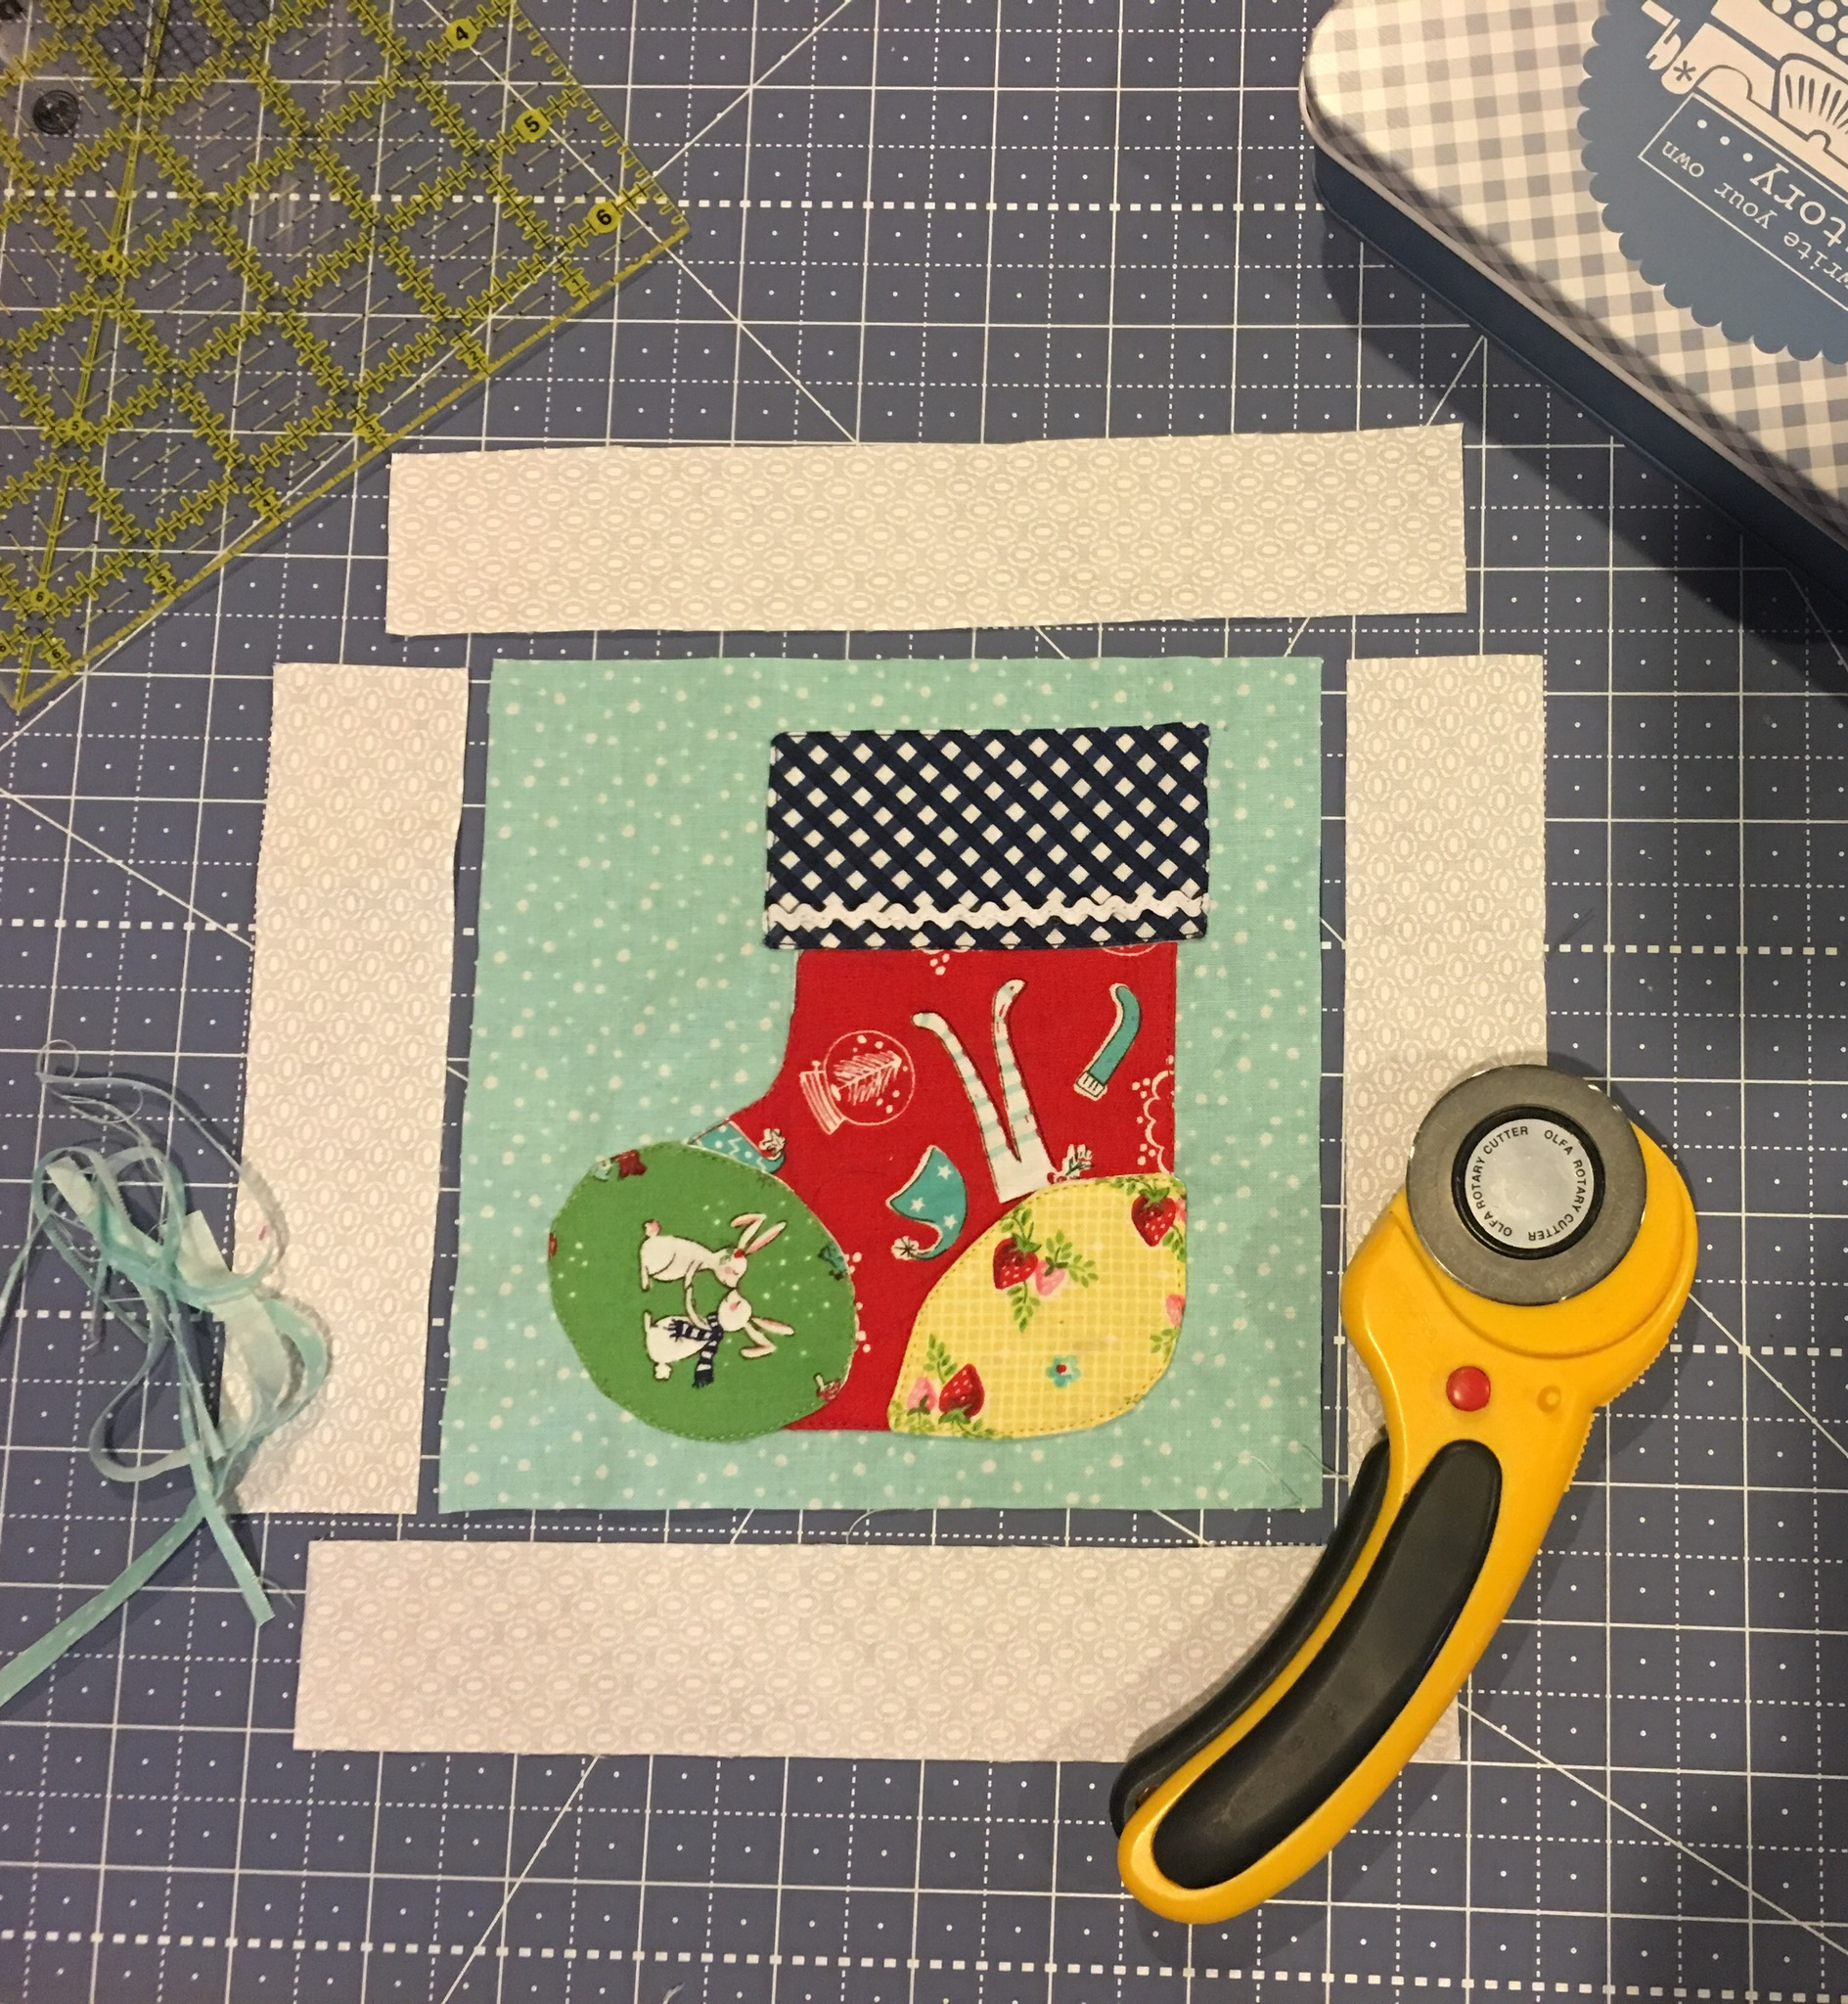 Adding the Cozy Christmas Stocking sashing strips